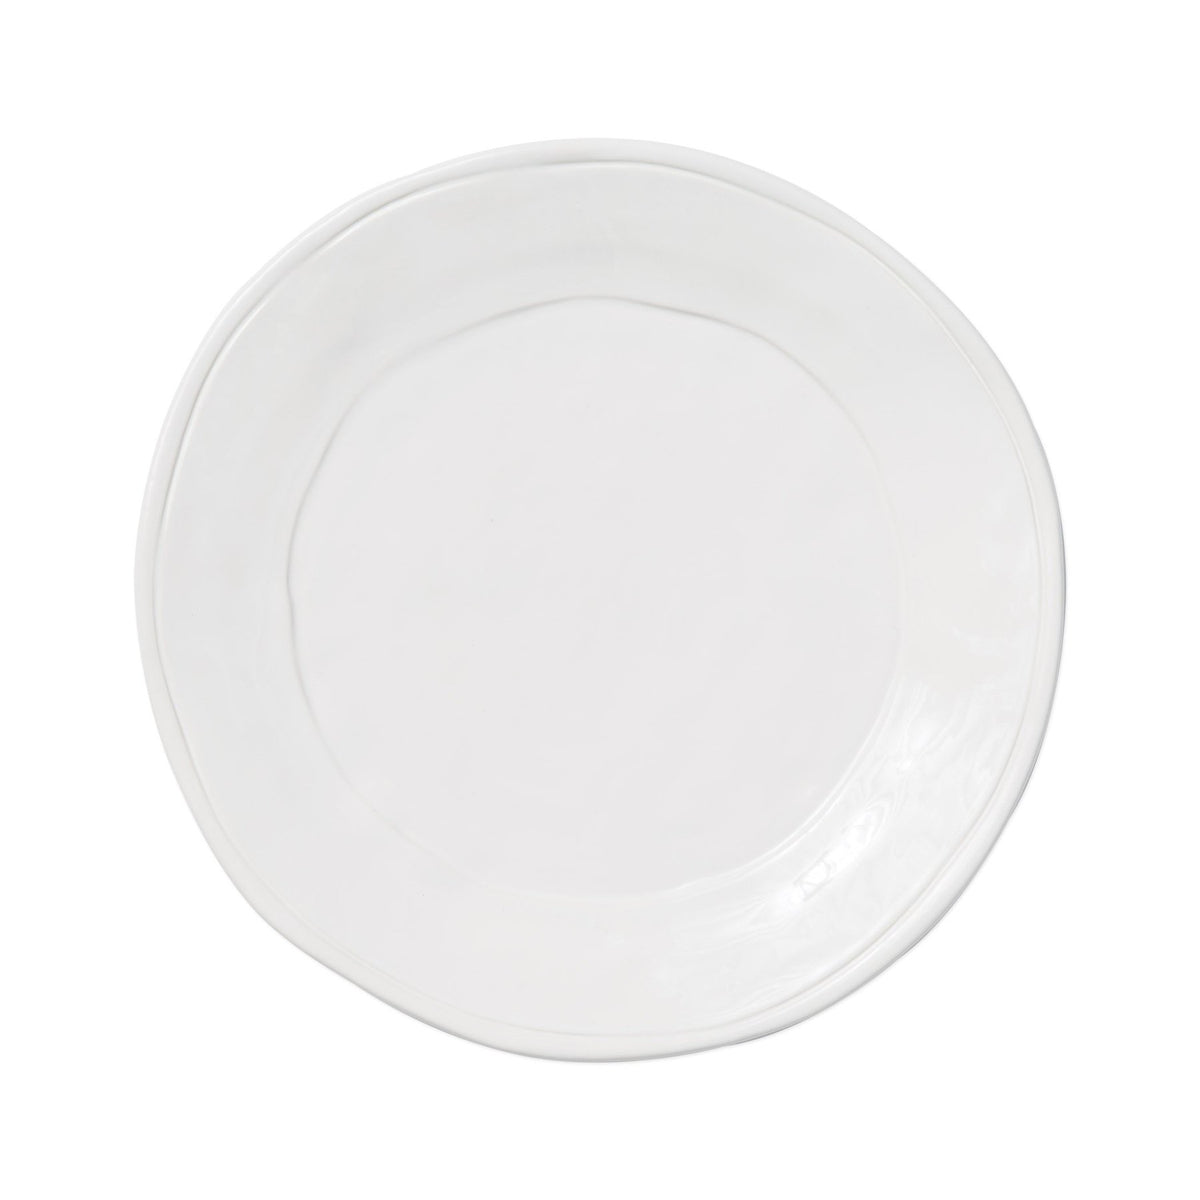 Vietri - Viva Fresh Dinner Plate